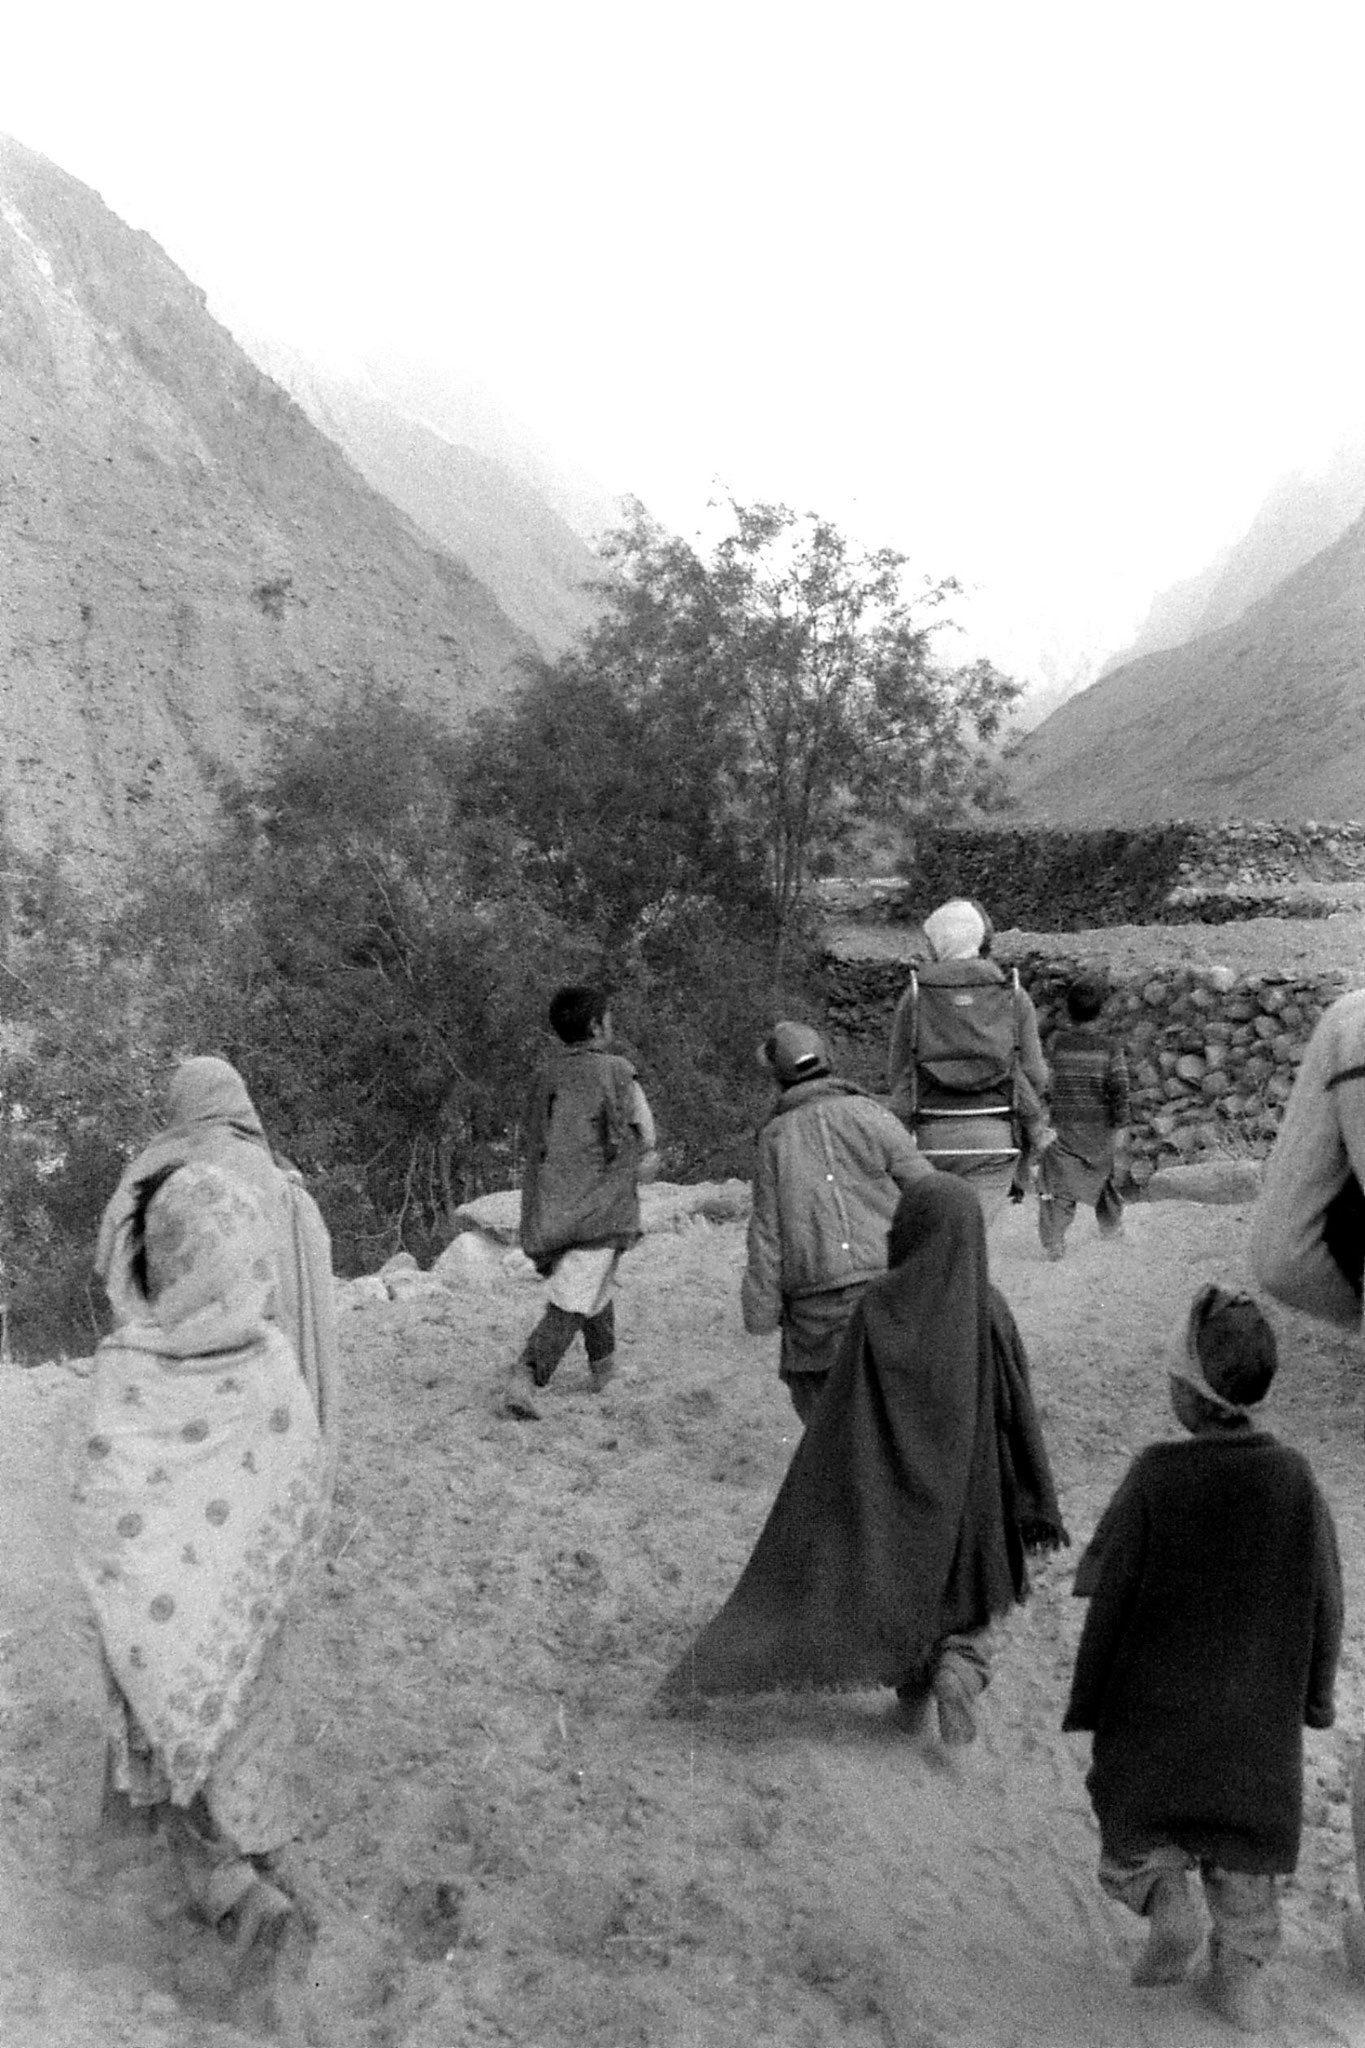 16/10/1989: 23: Khane, Joy with village children